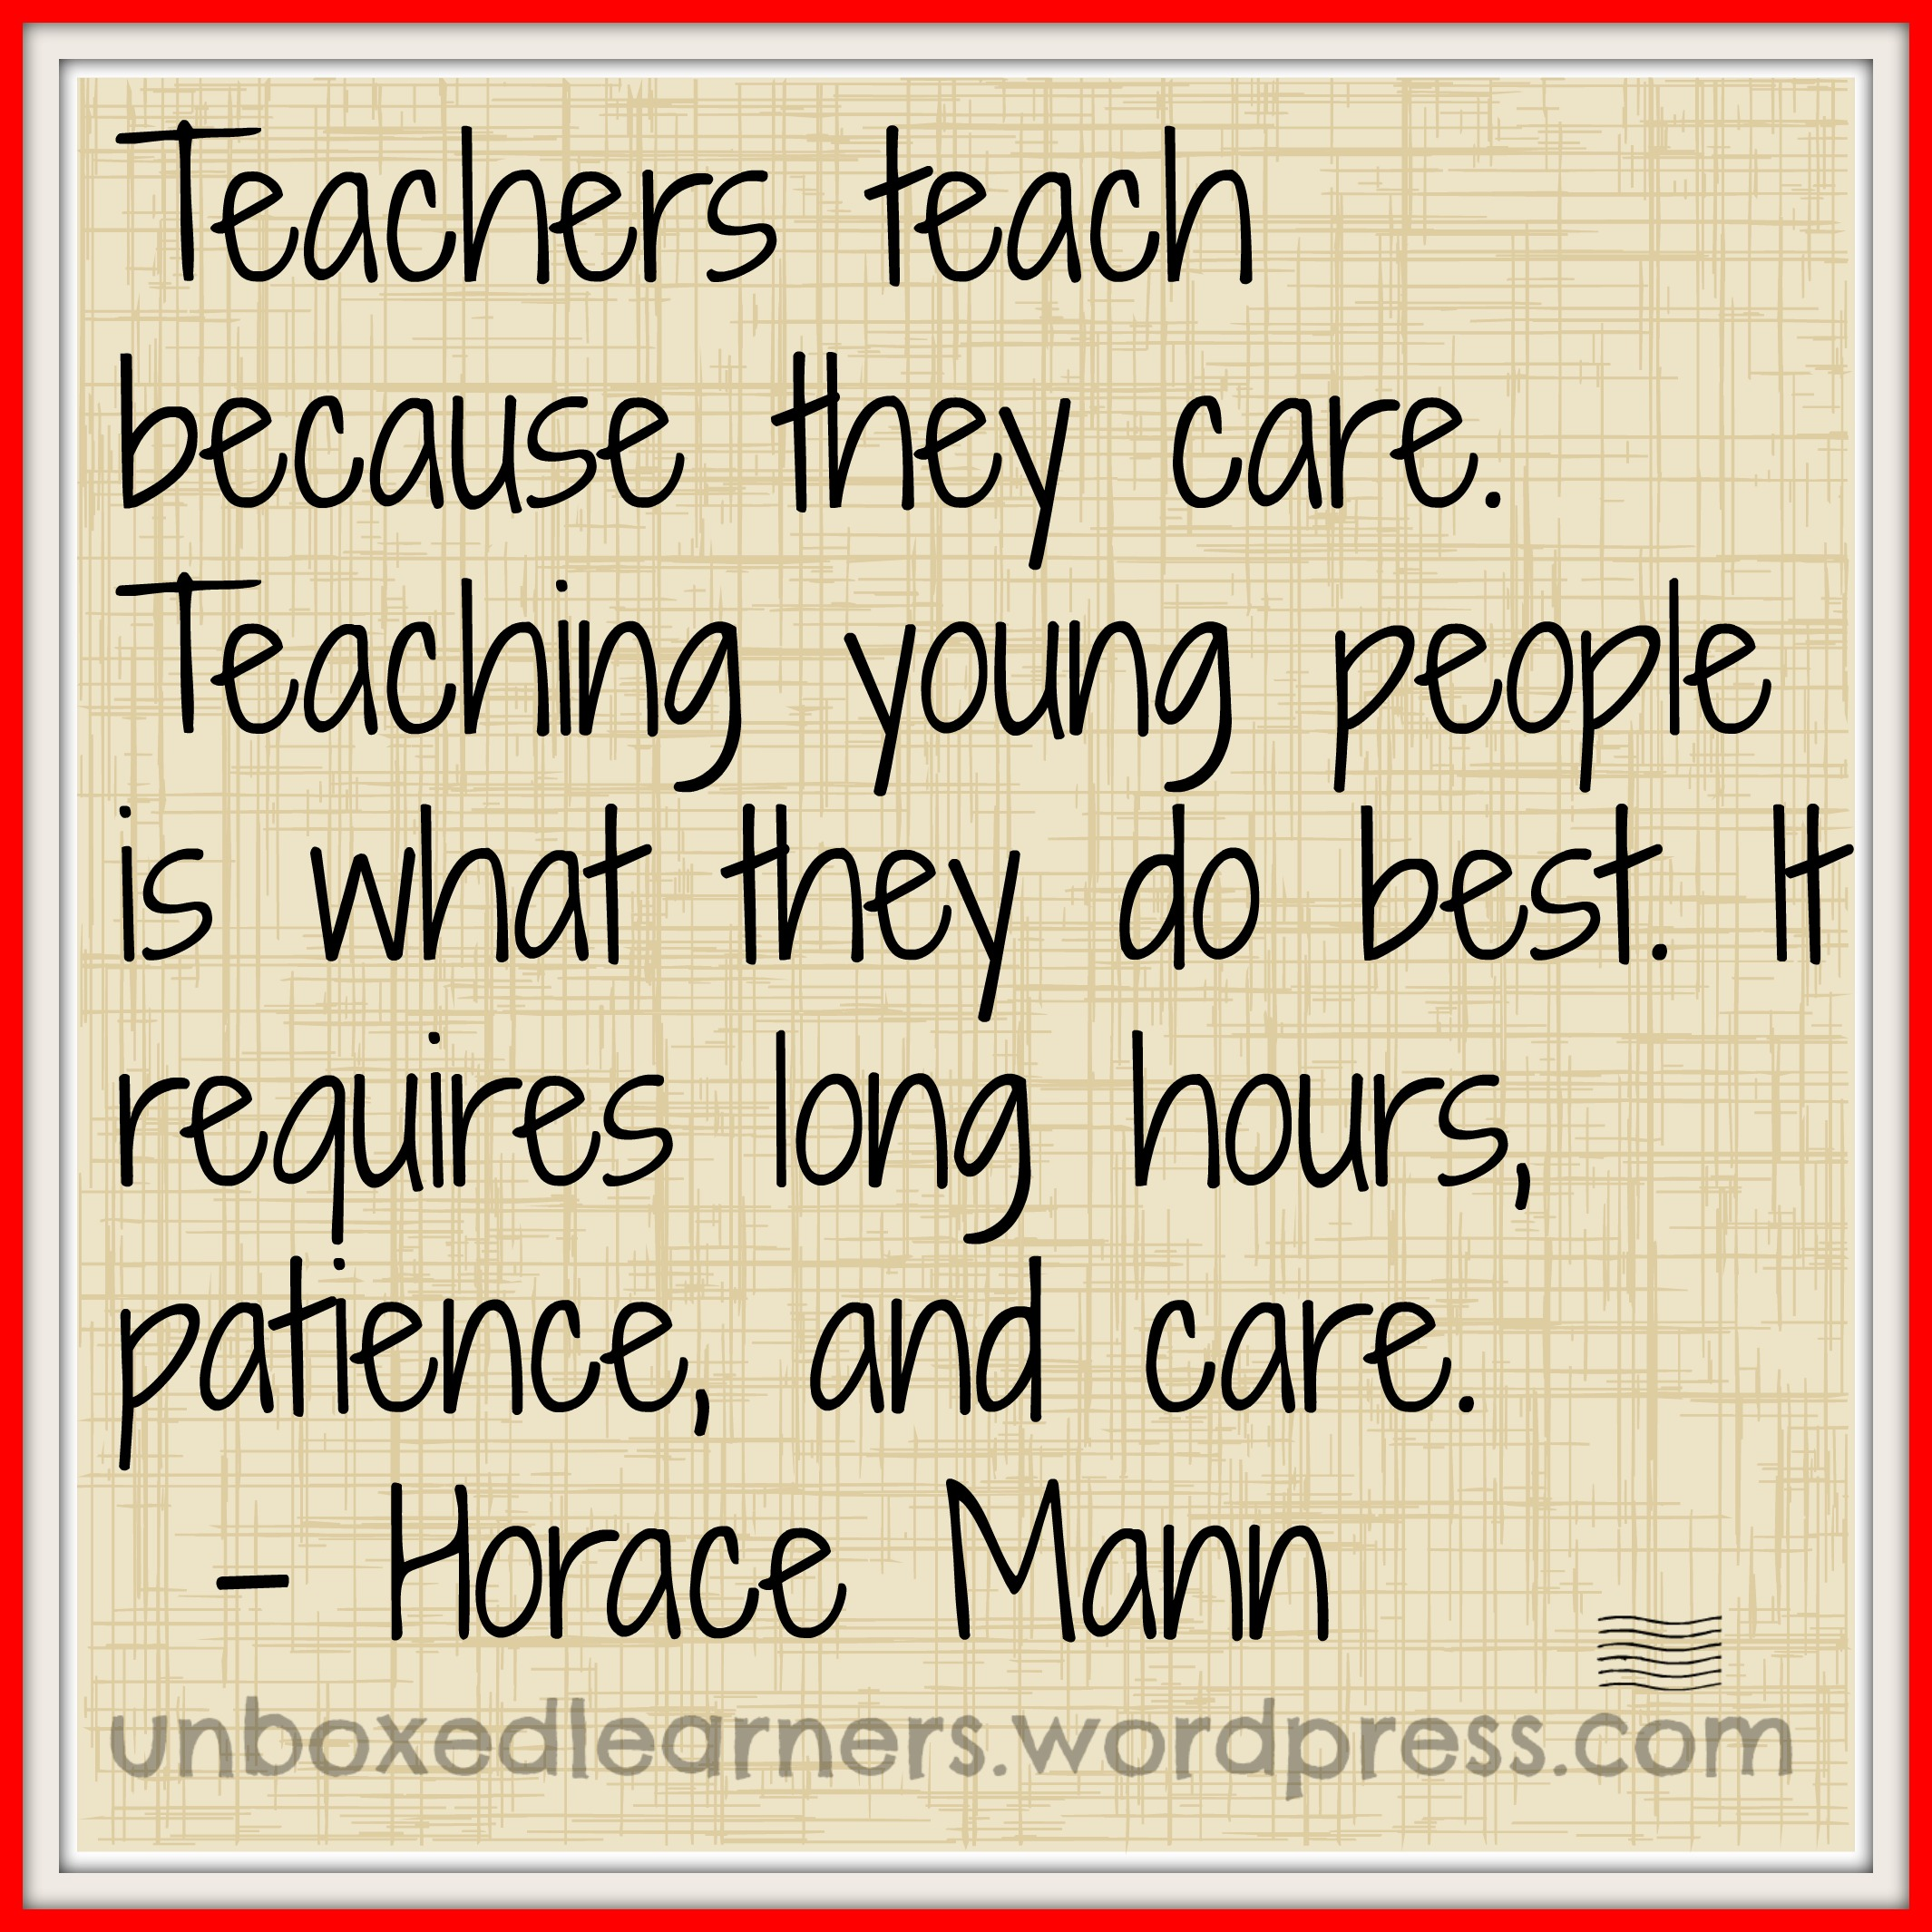 Teaching Quotes Teacher Quotes  Unboxedlearners